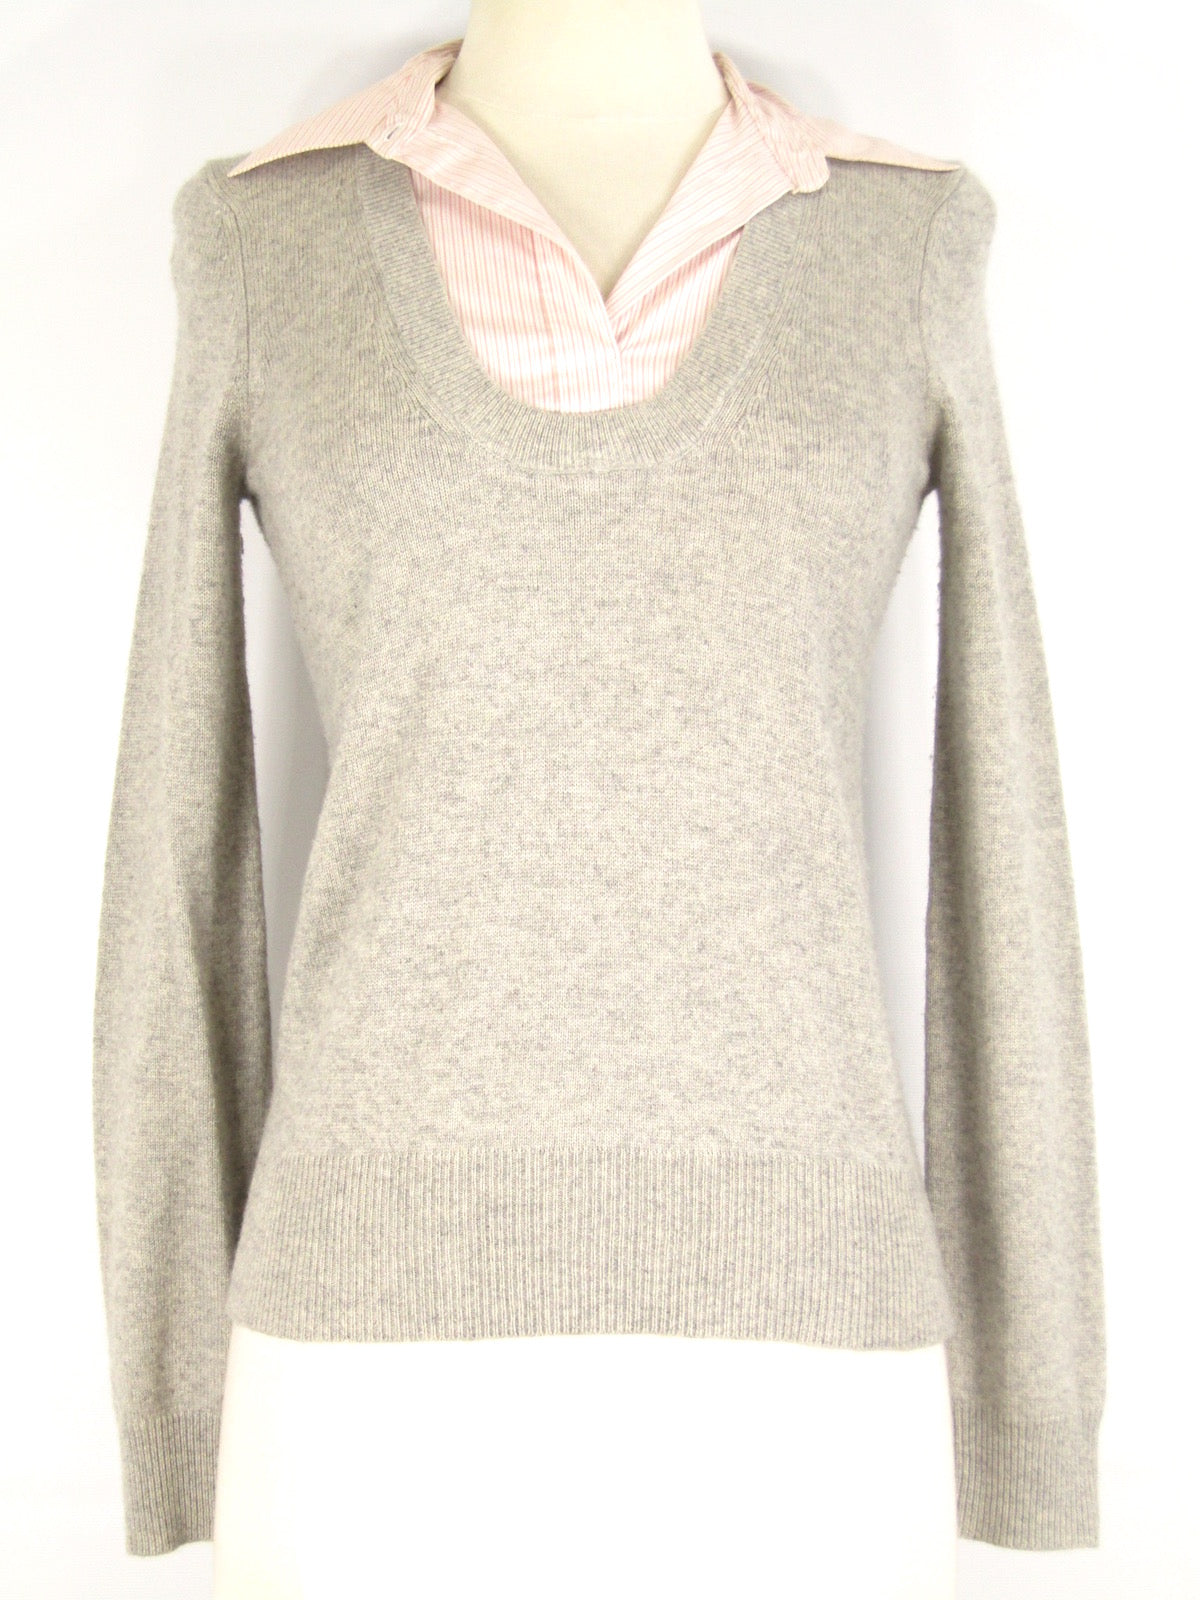 Theory Women Light Gray Cashmere Blend Knit Sweater Pink White Shirt C